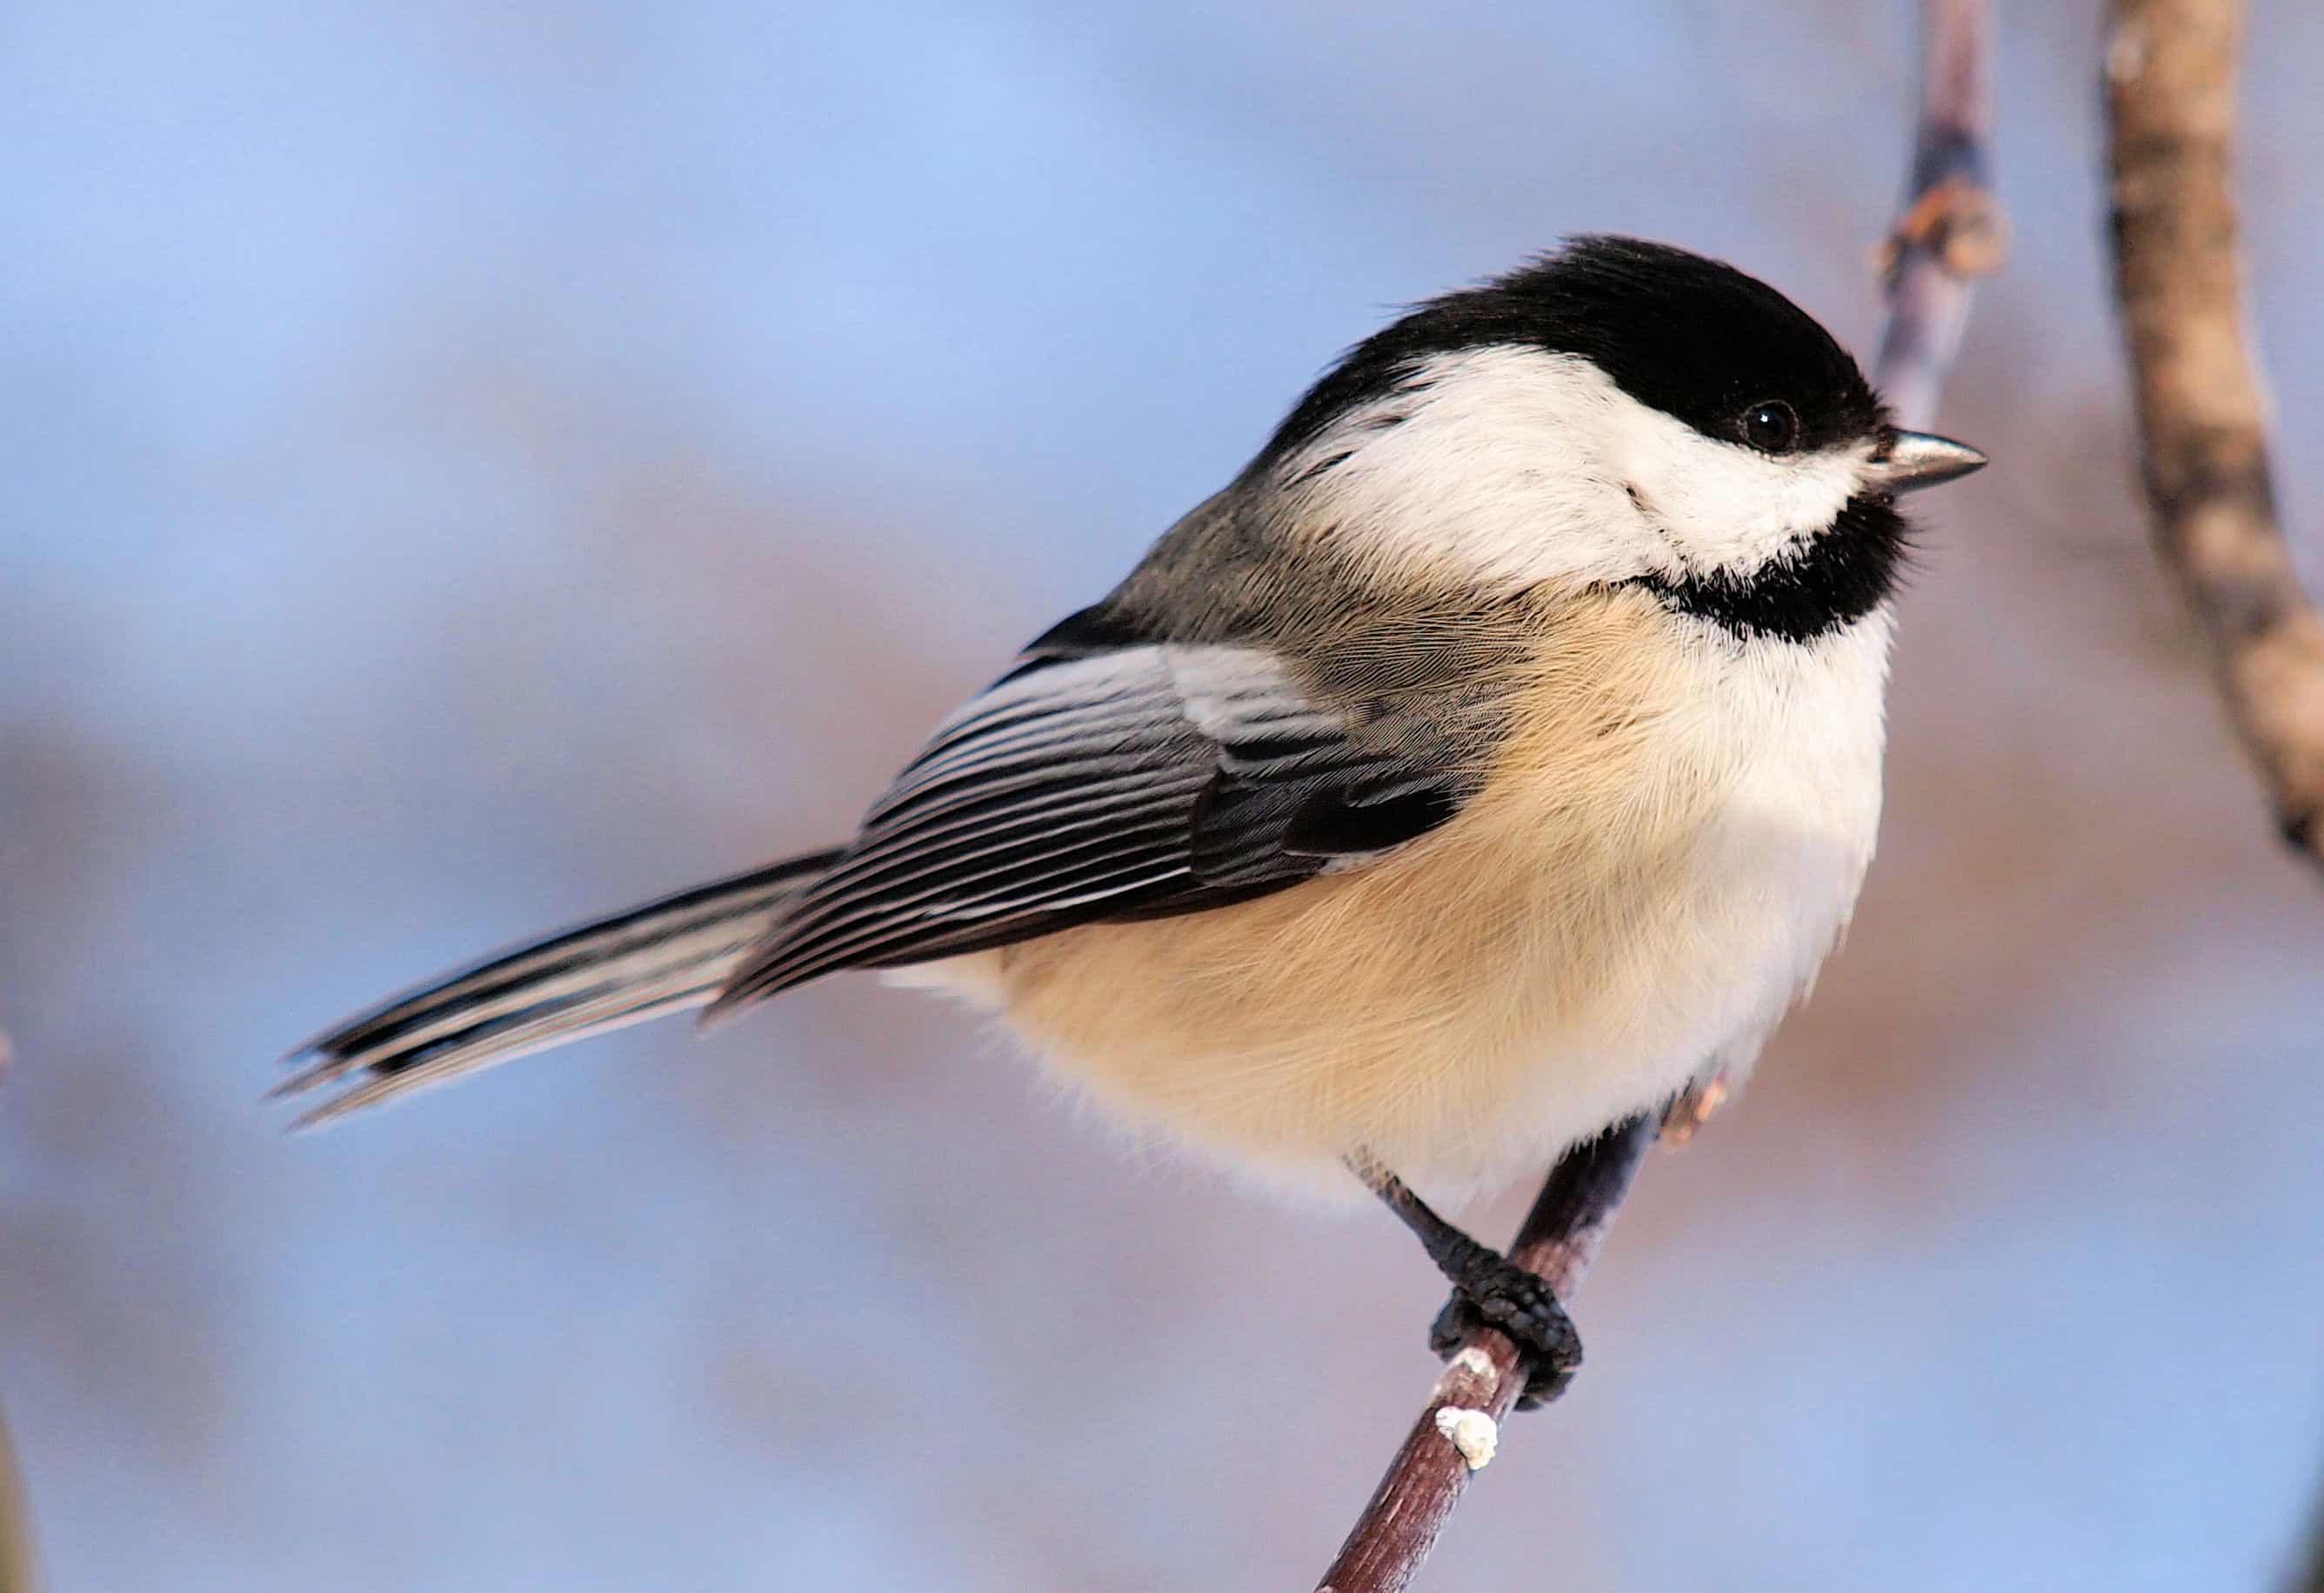 Chickadee myths, folklore and spirit animal info